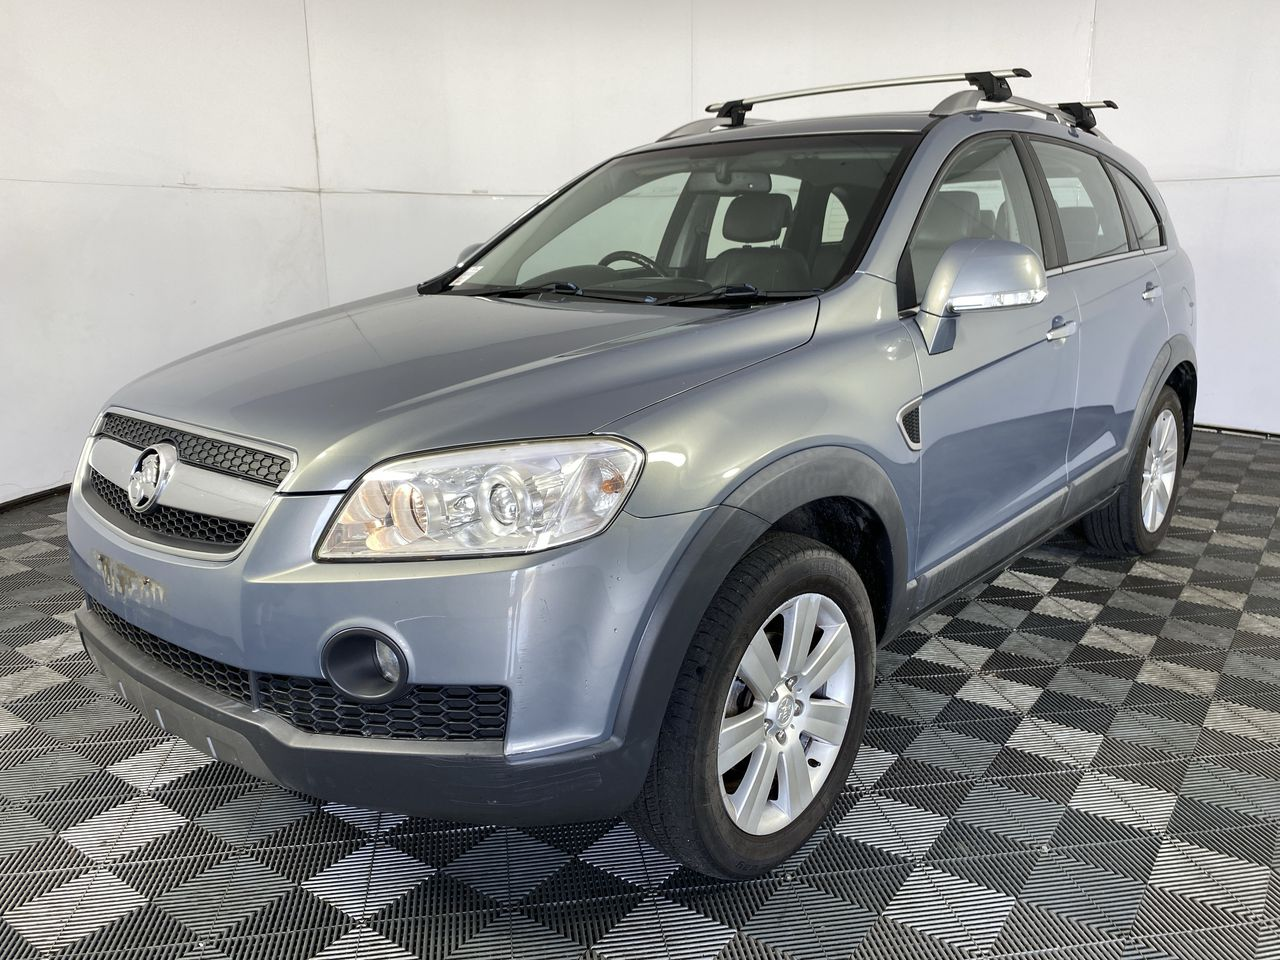 2010 Holden Captiva LX AWD CG Turbo Diesel Automatic 7 Seats Wagon